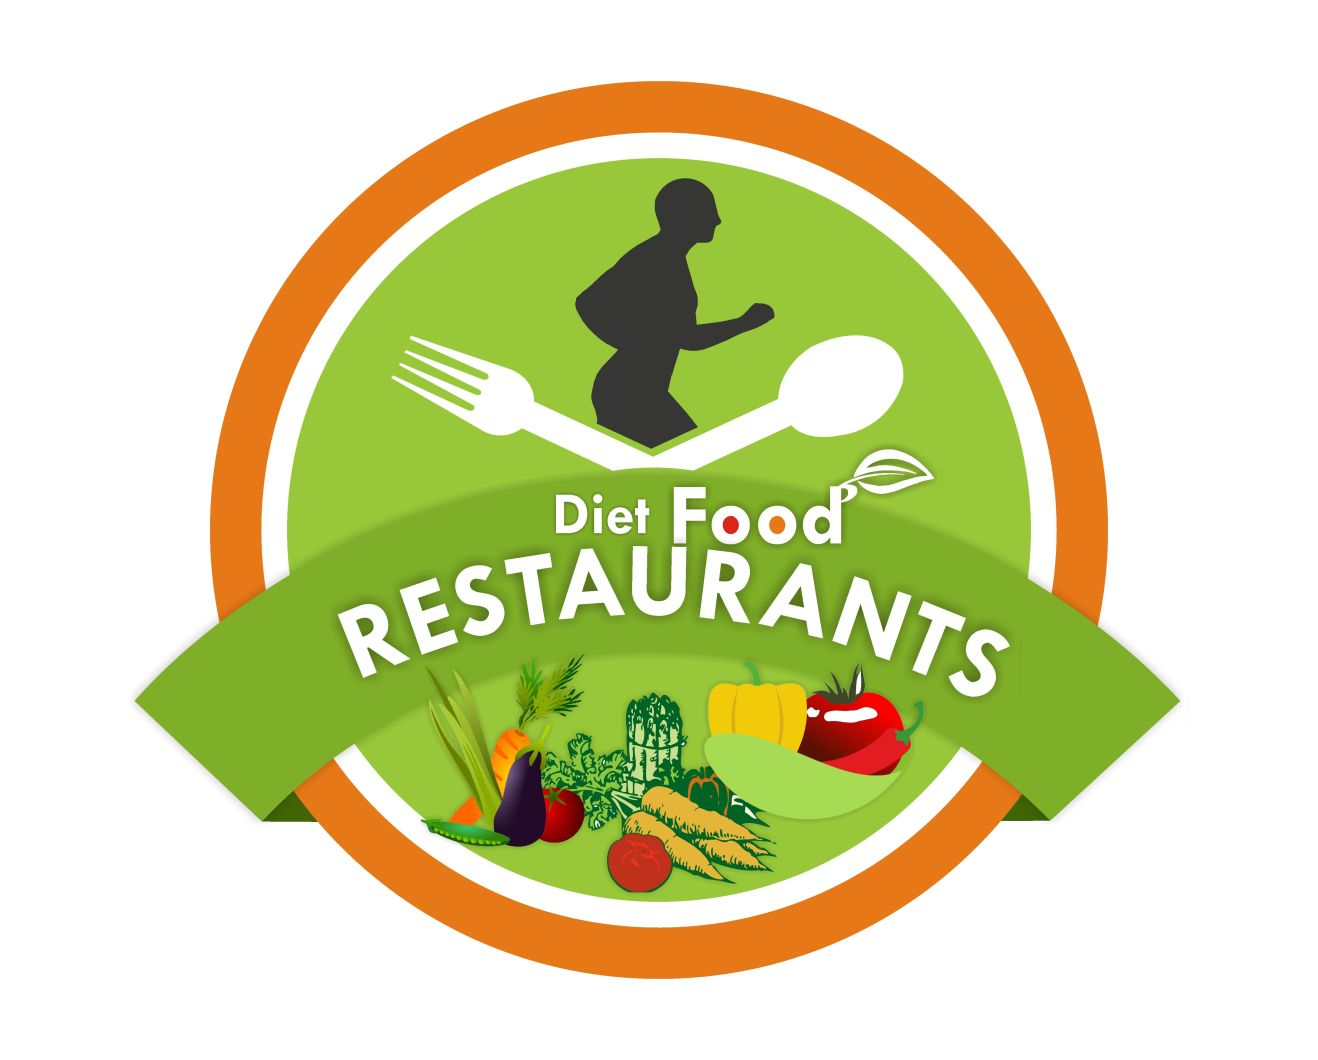 Diet food restaurants near me